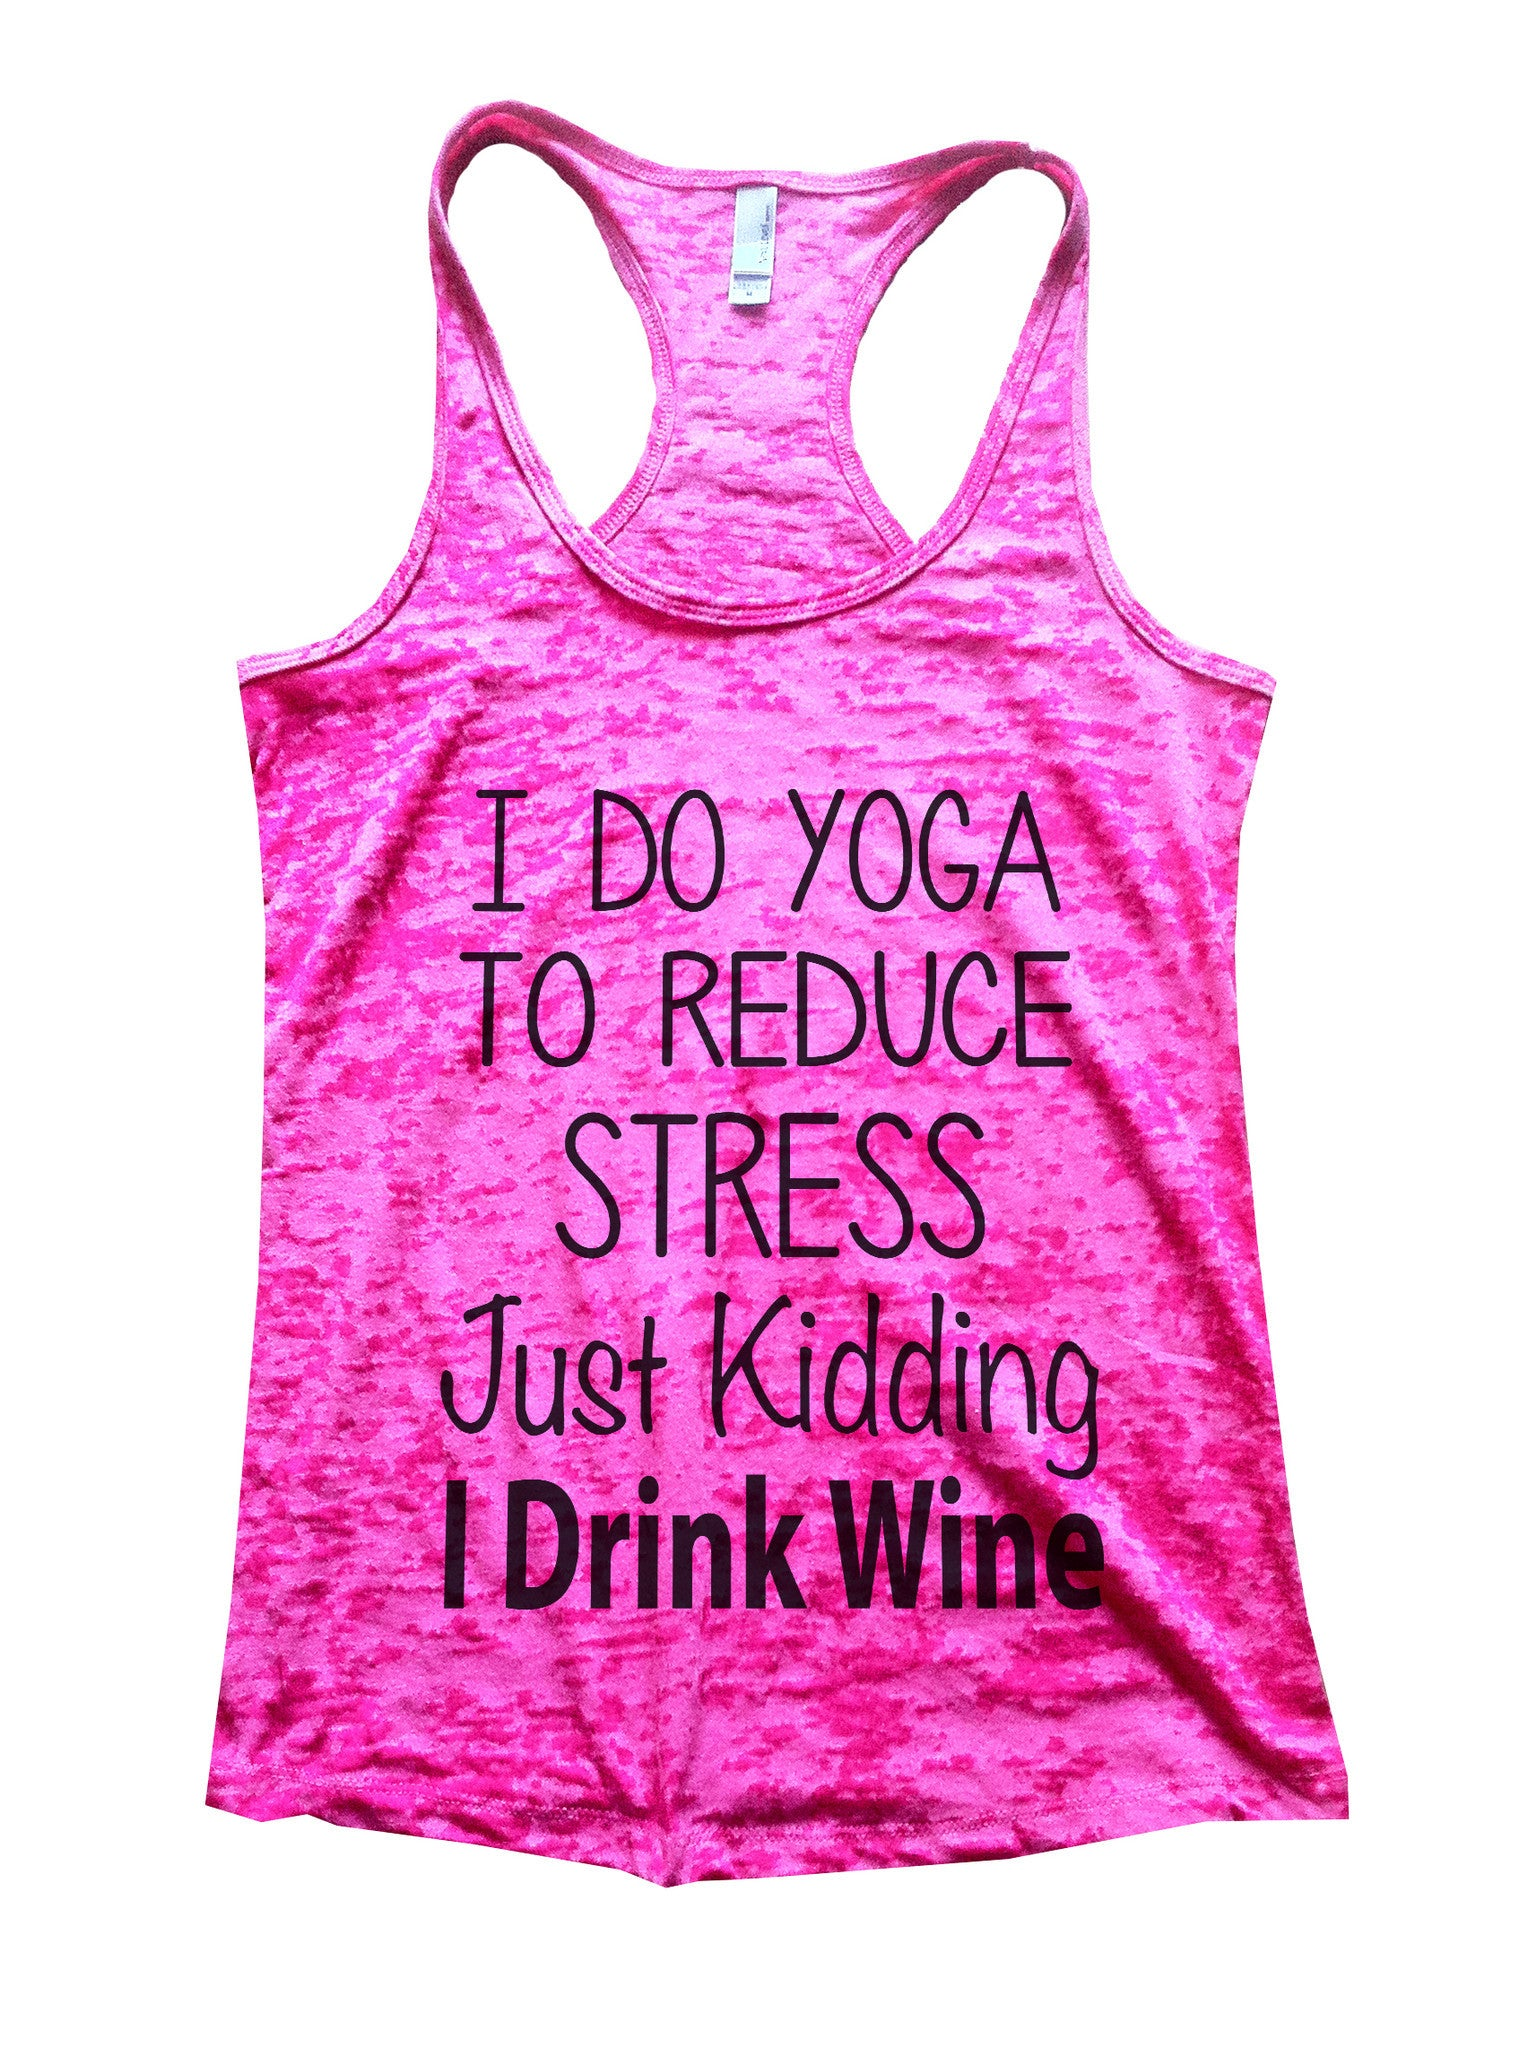 I Do Yoga To Reduce Stress Just Kidding I Drink Wine Burnout Tank Top By BurnoutTankTops.com - 627 - Funny Shirts Tank Tops Burnouts and Triblends  - 5